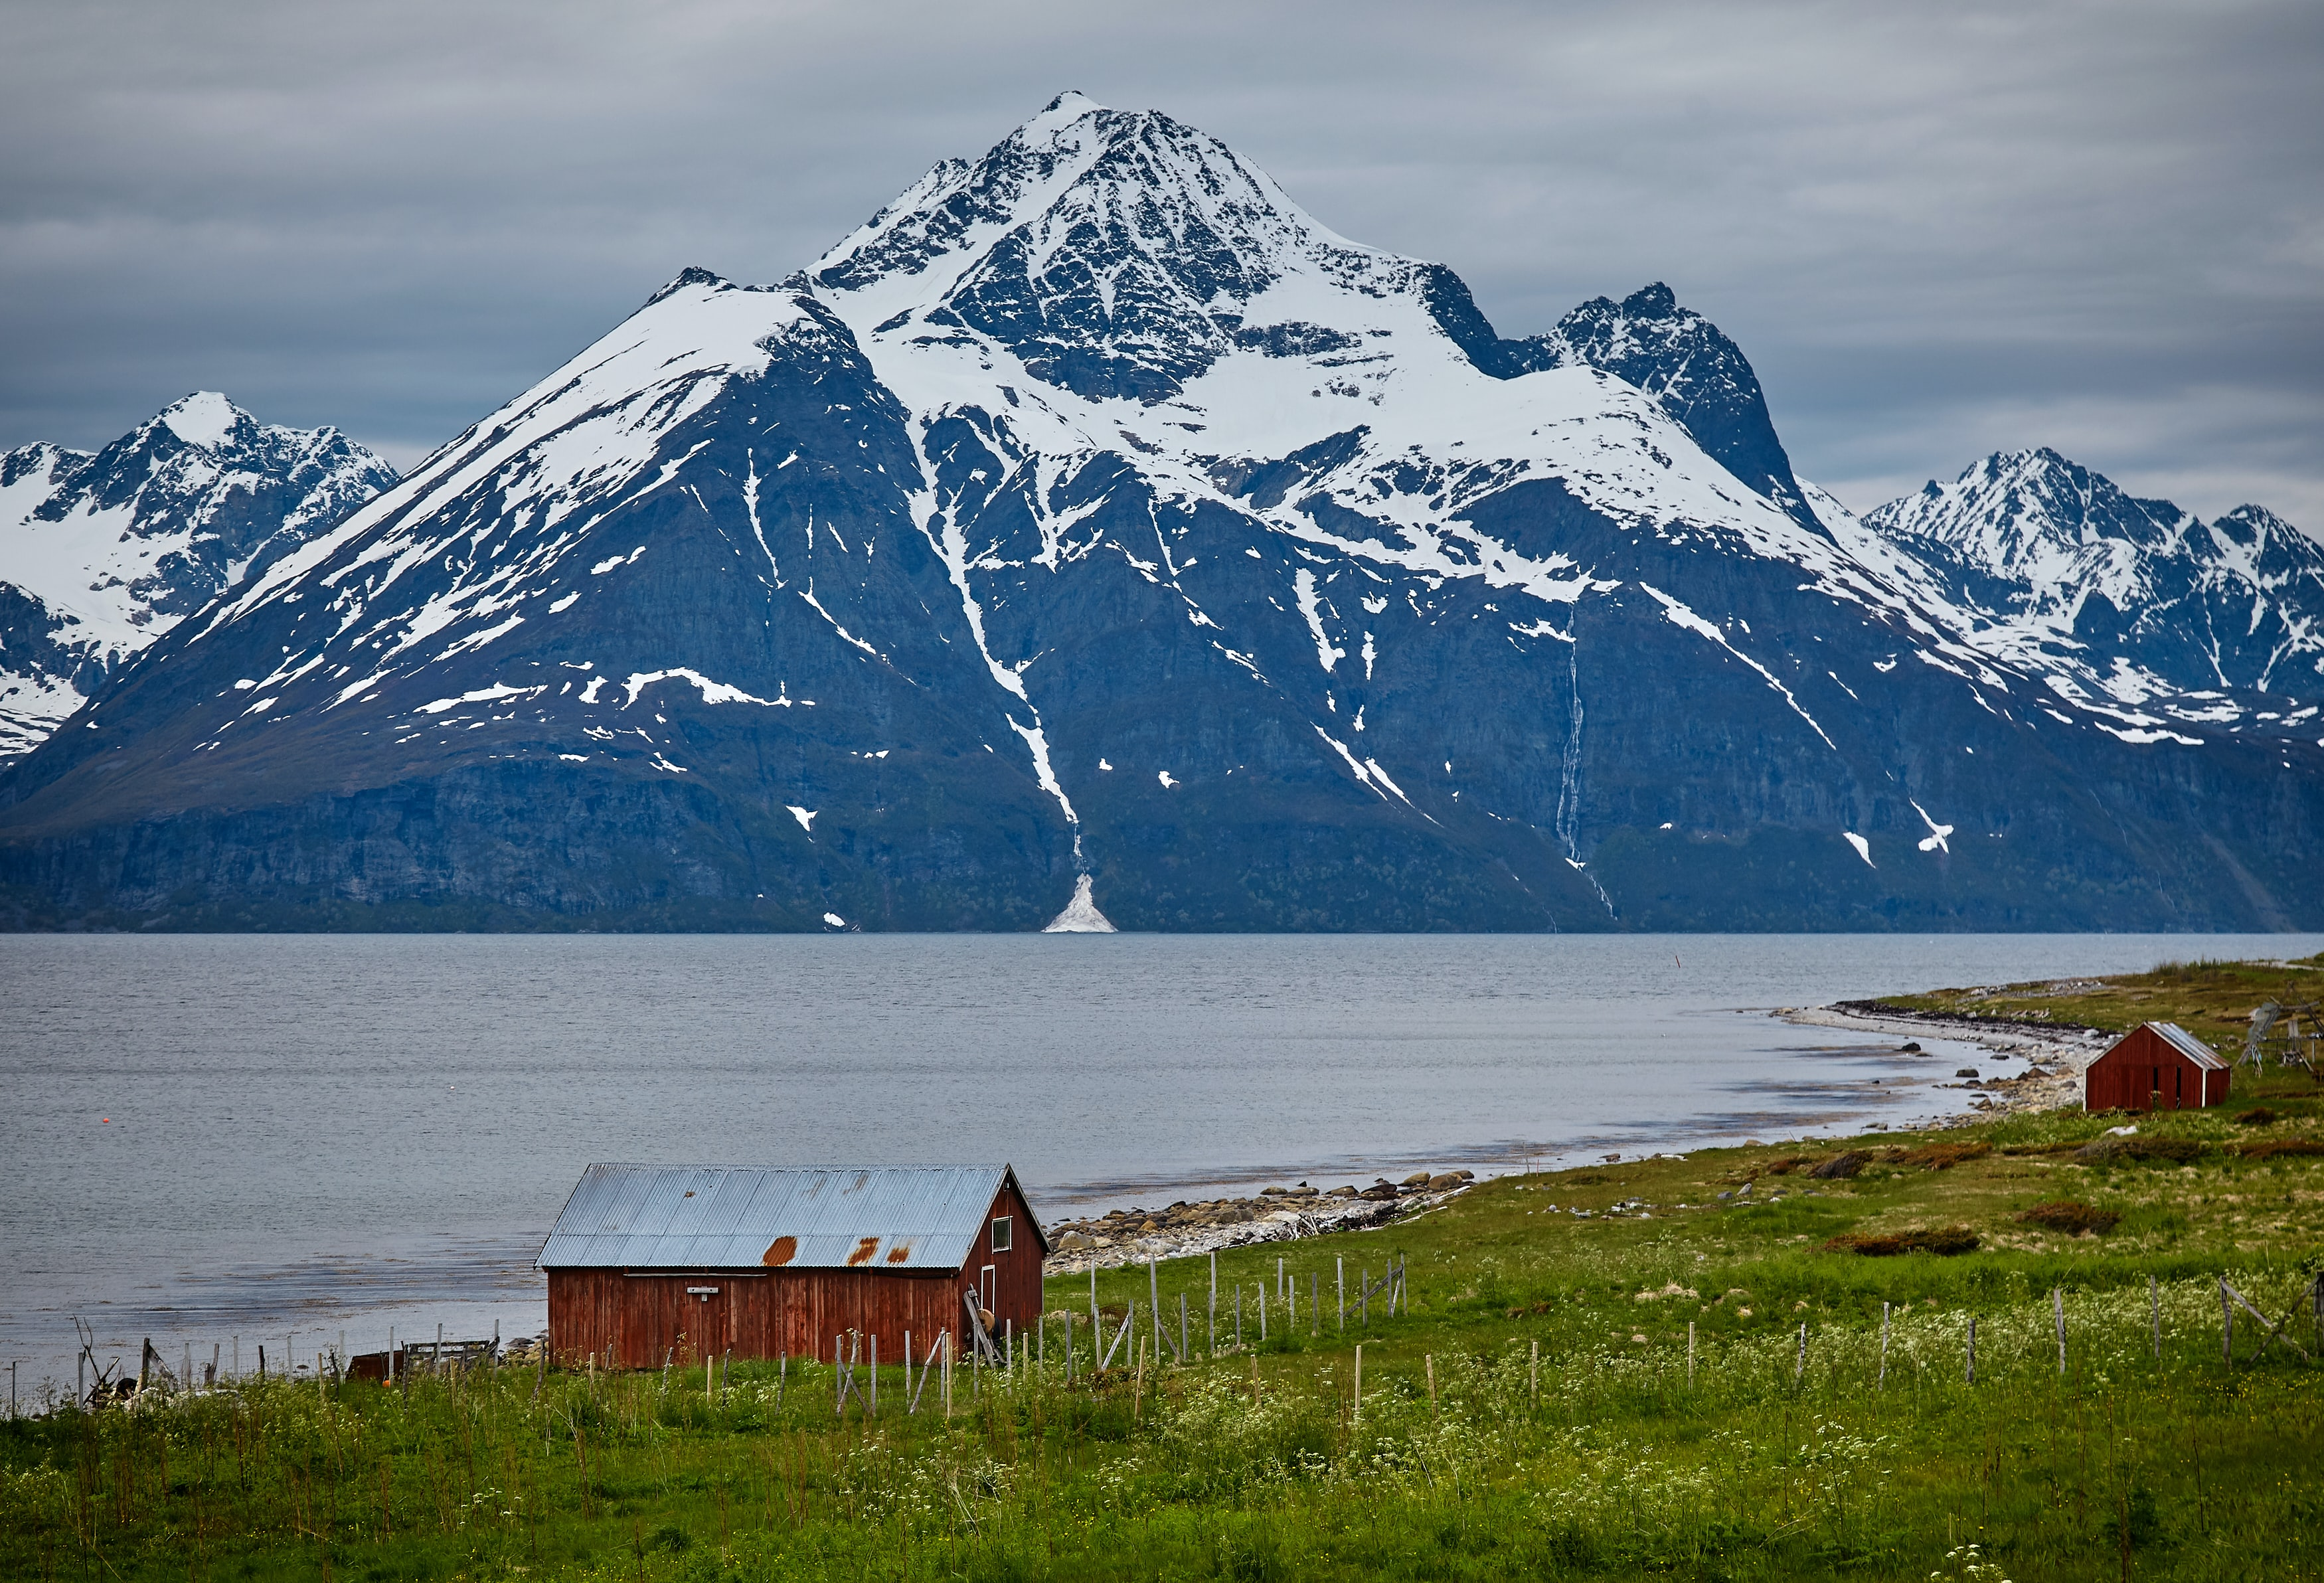 photo of two brown wooden barns near blue body of water and snow covered mountains at daytime